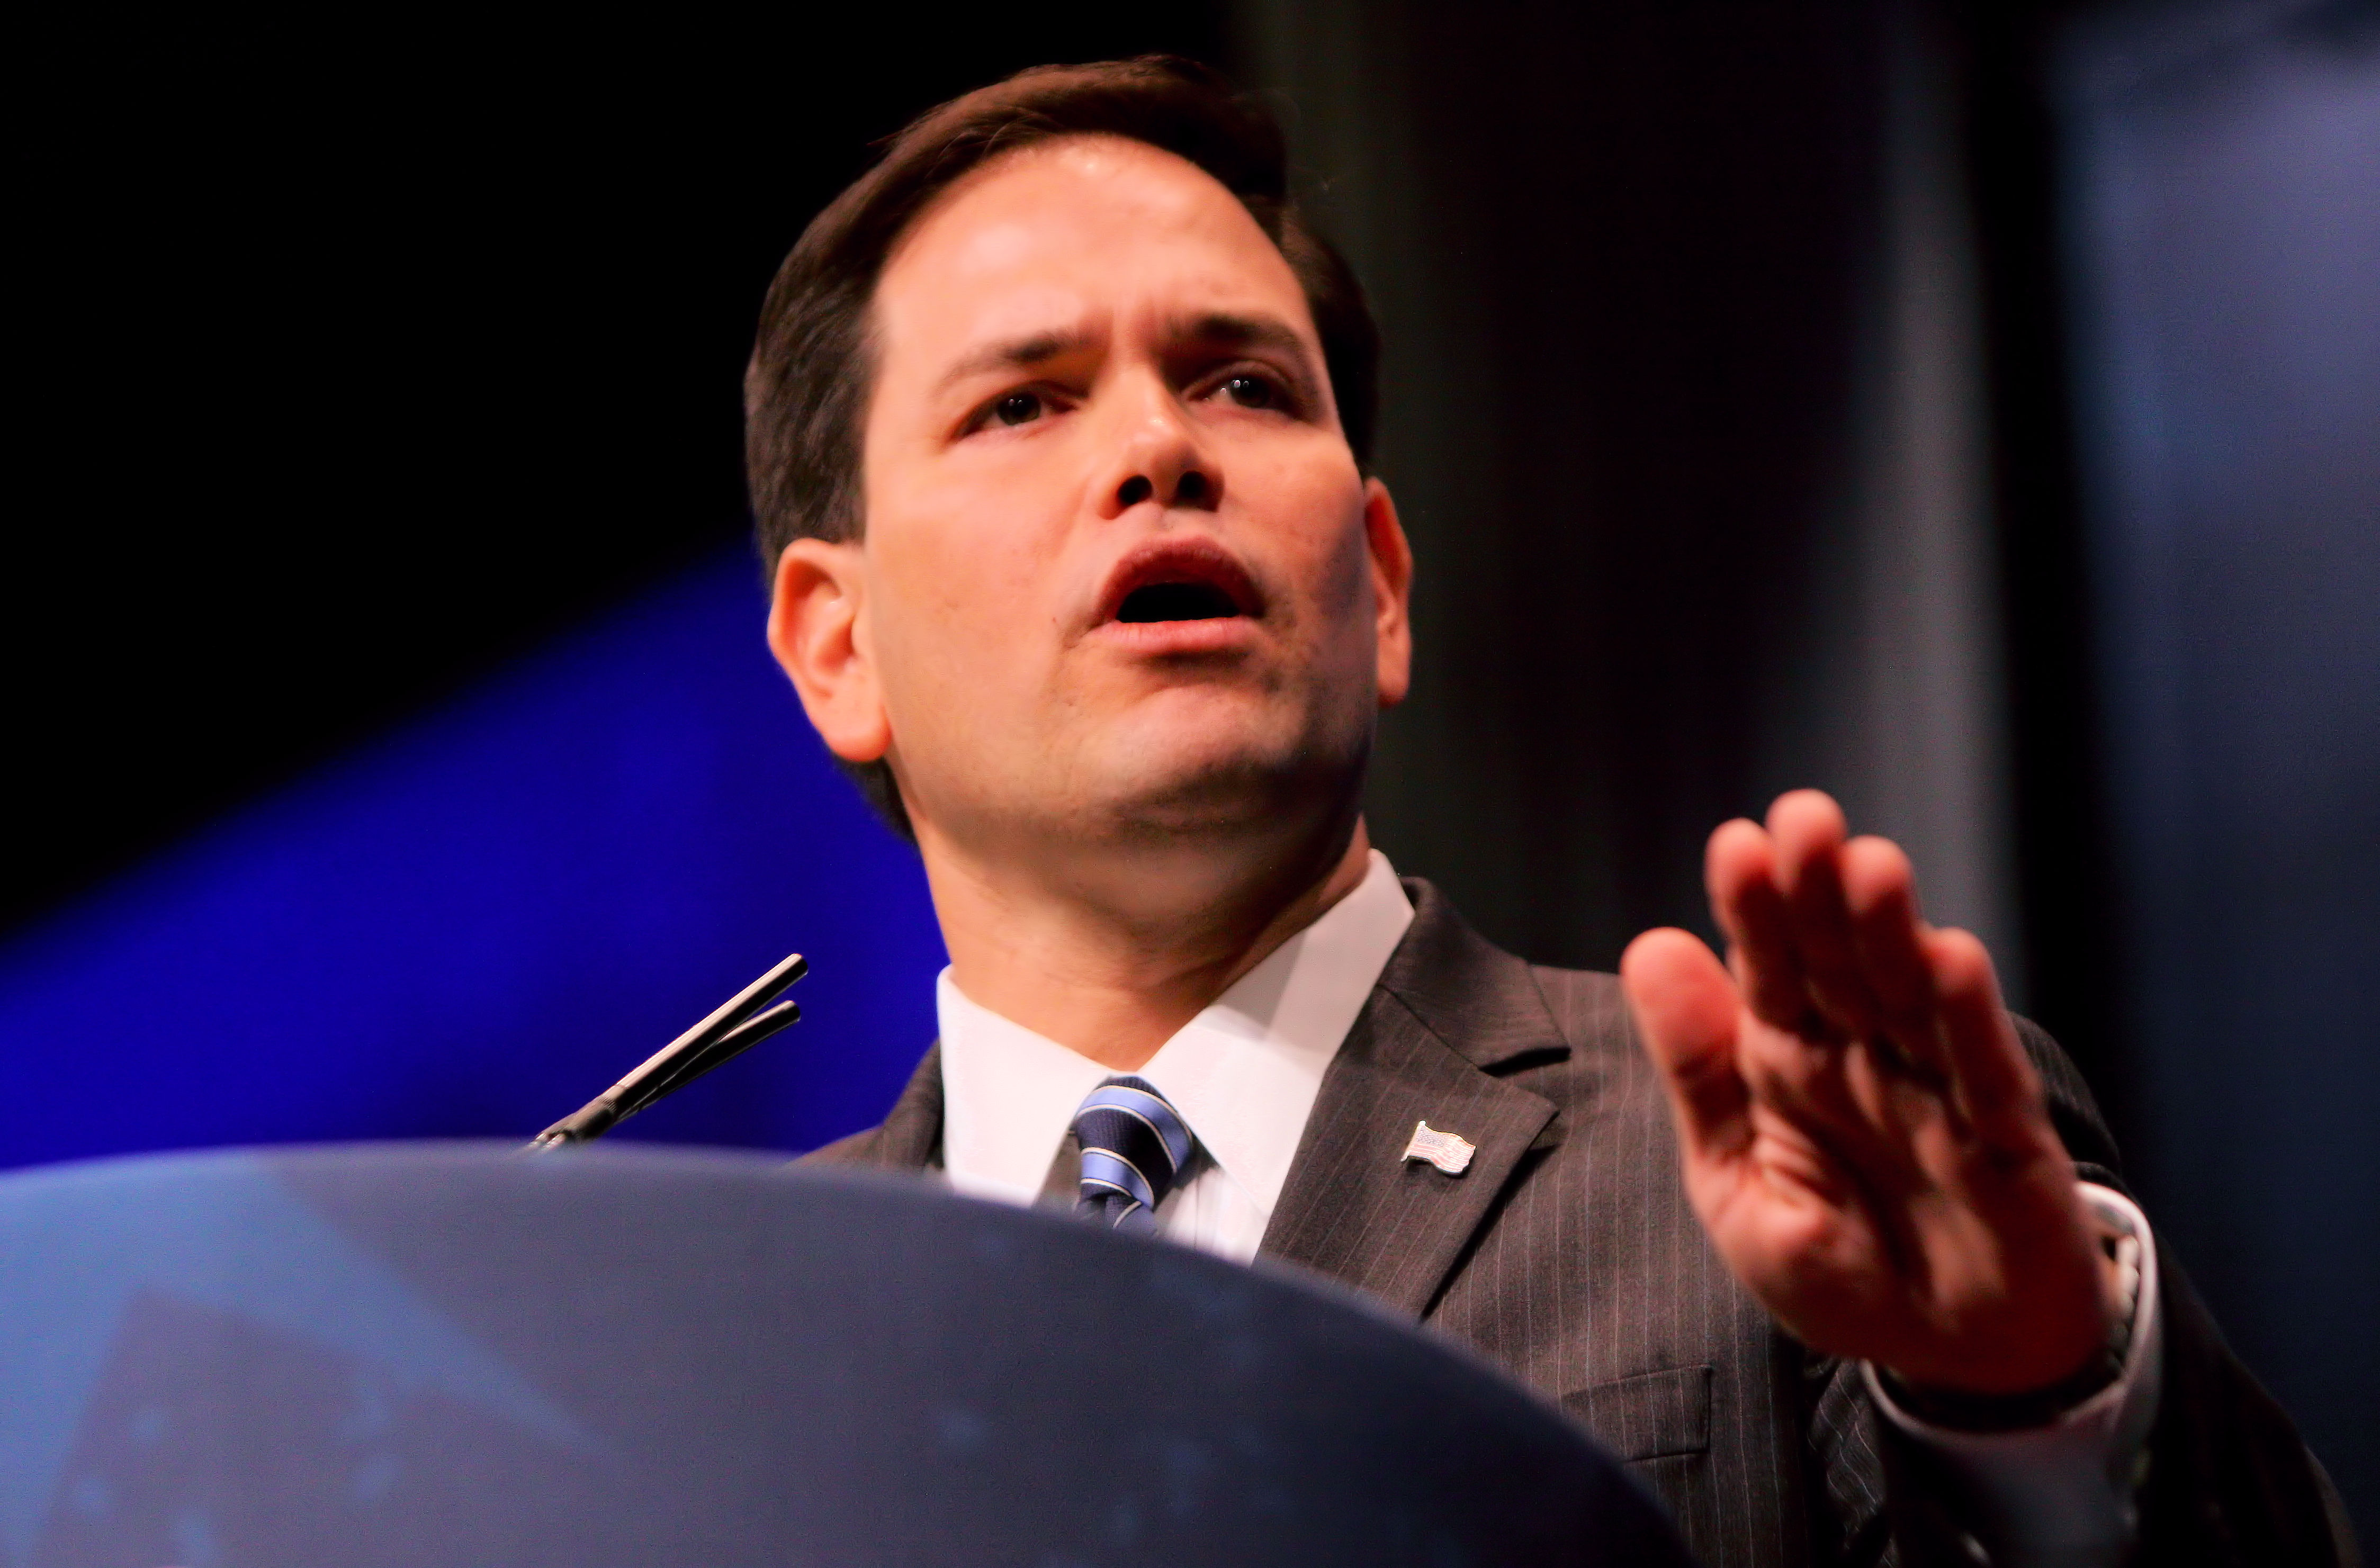 Entire $1.7 Billion Paid In Cash to Iran – Rubio Files Bill To Forbid U.S. Government Paying Ransom To Iran Ever Again Featured